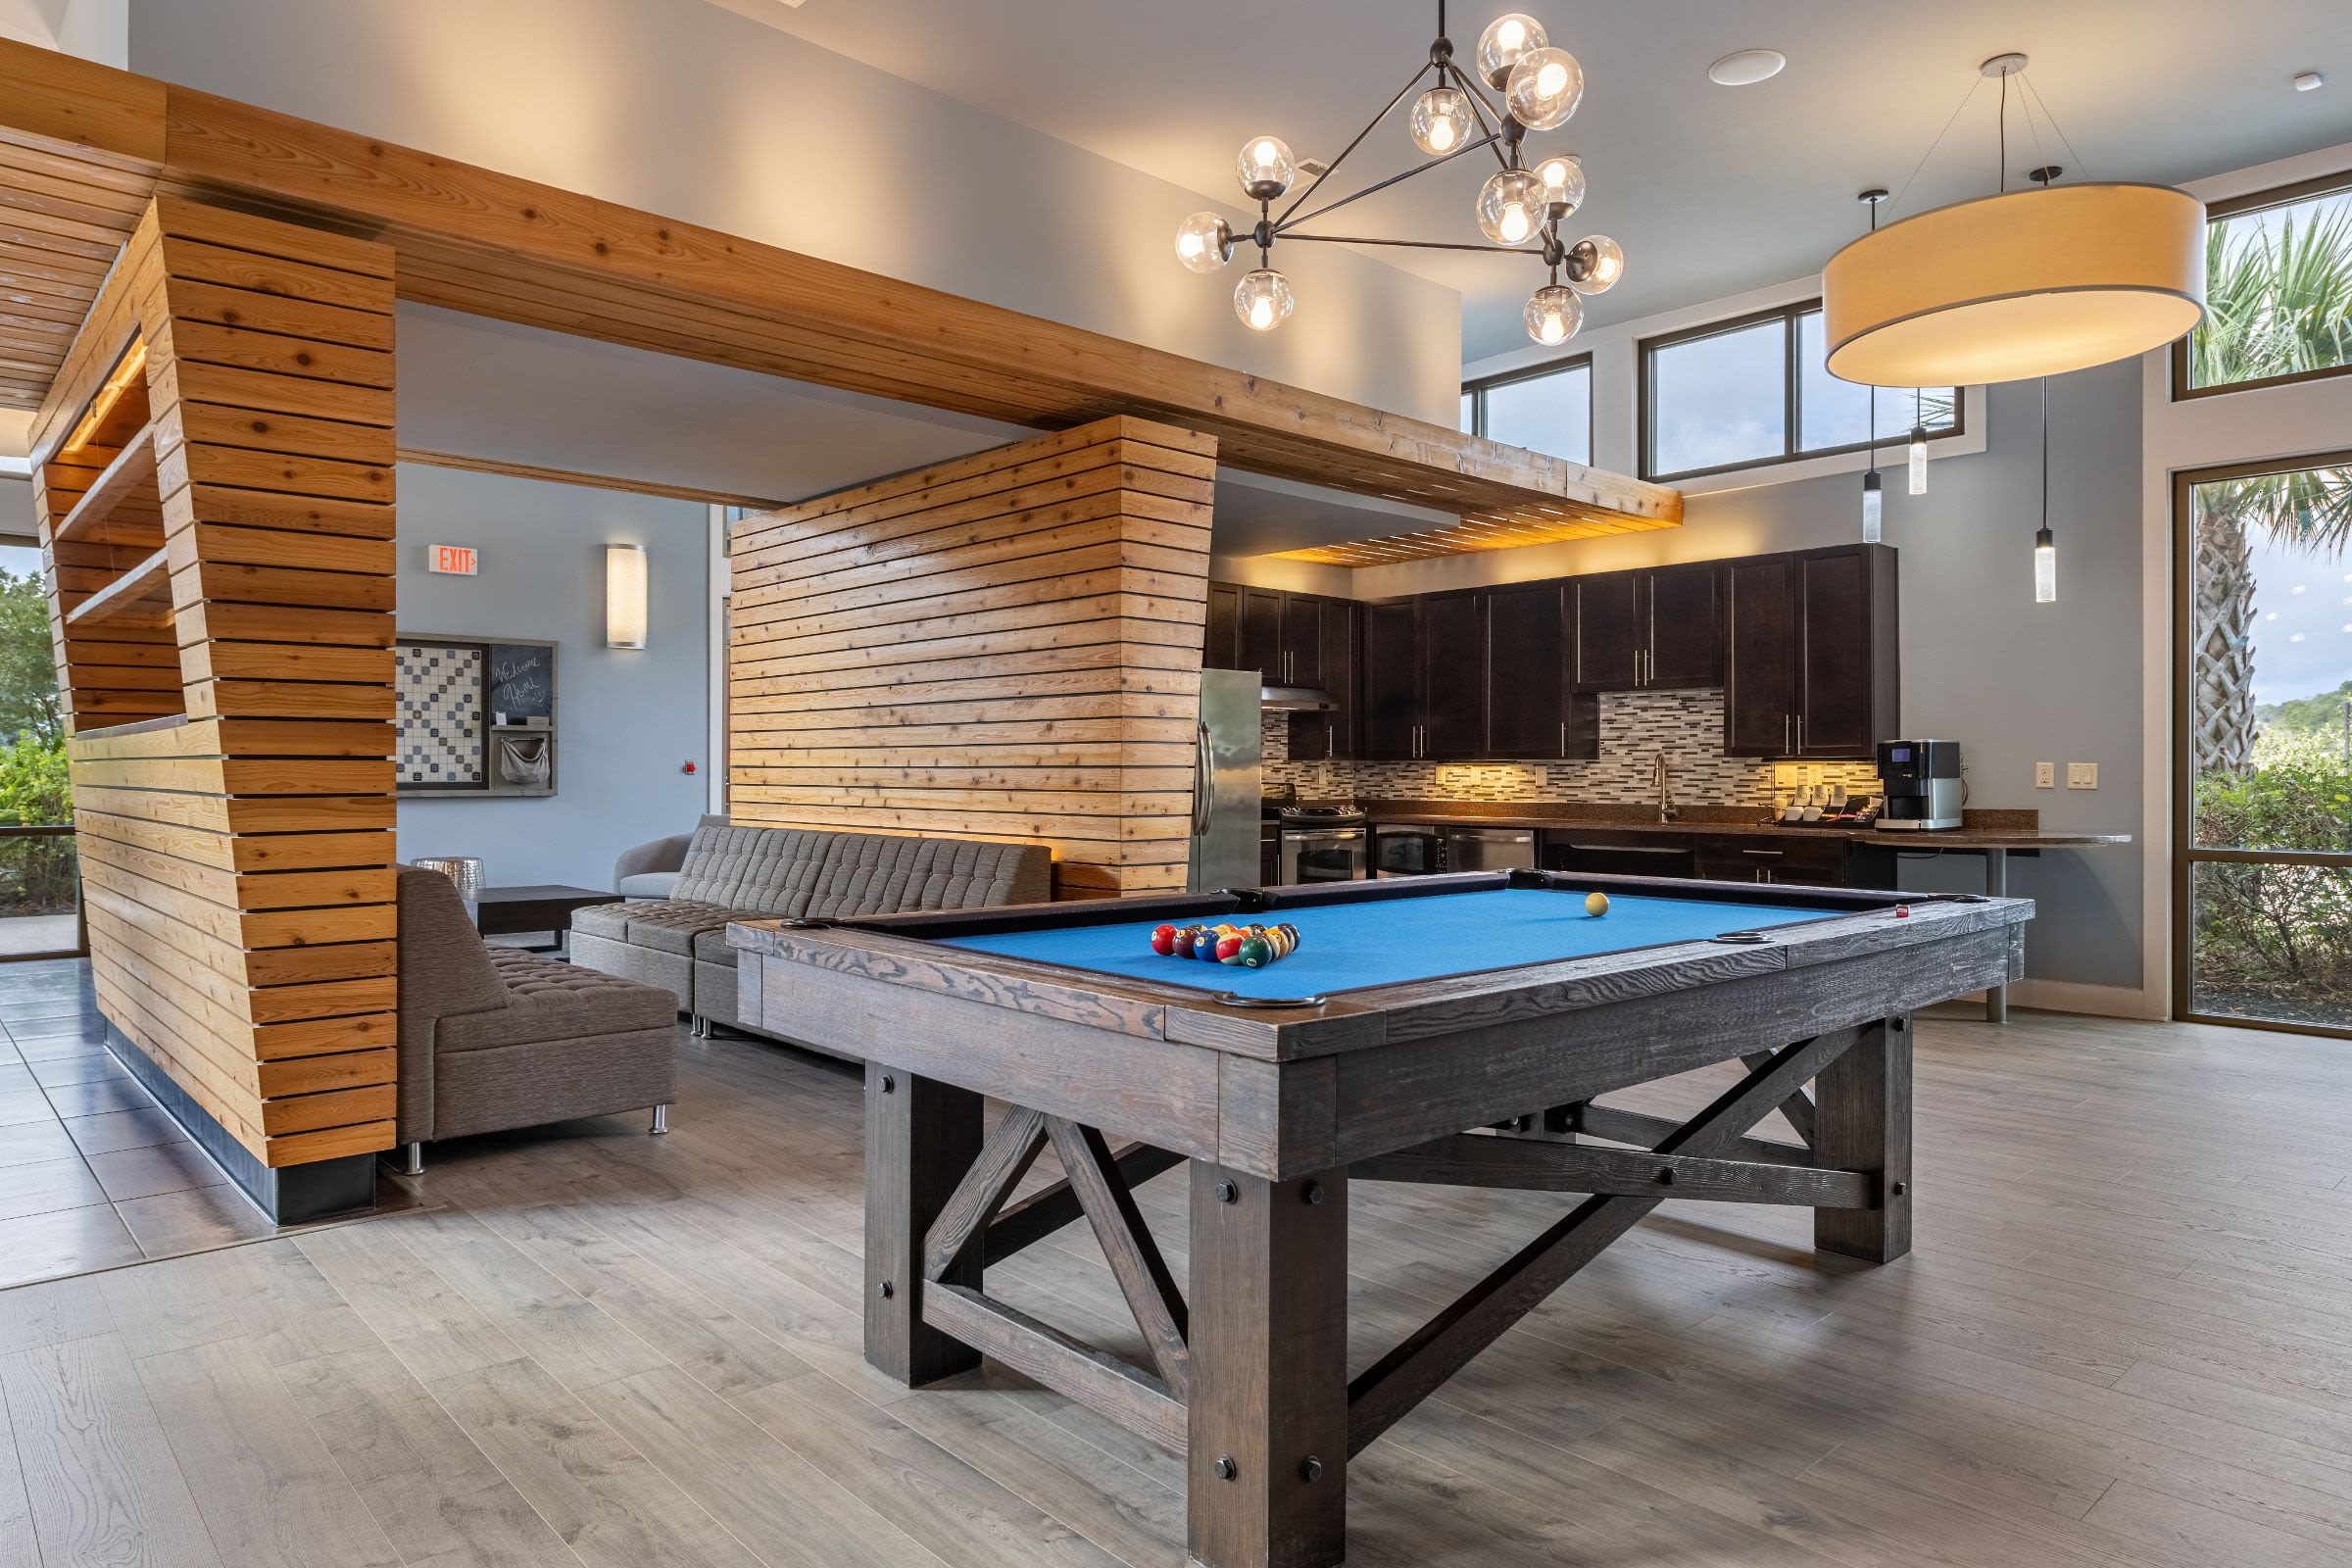 Pool table in clubhouse at Marquis Cresta Bella in San Antonio, Texas